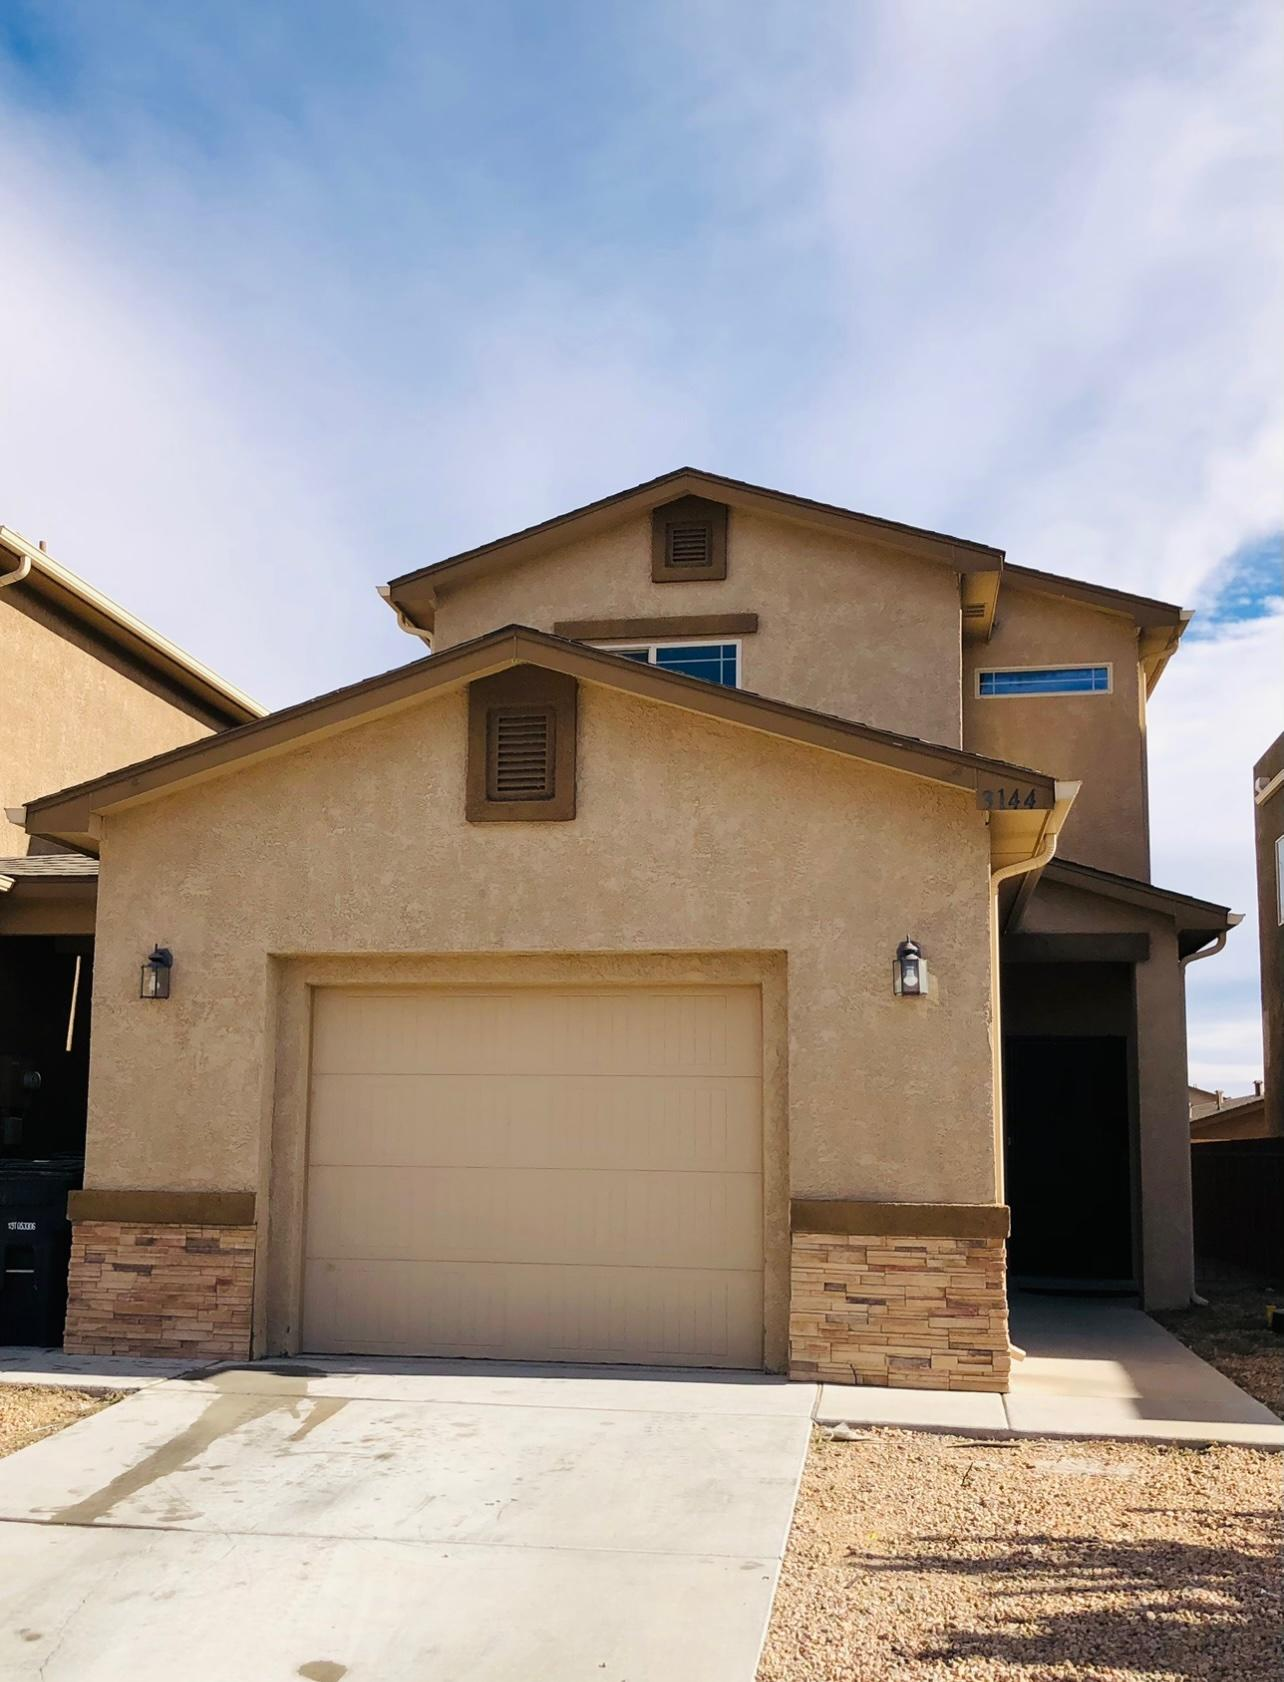 A complete refresh in this home. New paint, new flooring, all new appliance package, new granite counter tops, back yard rock added, tankless Hot Water, new blinds. Make this home yours today!!!